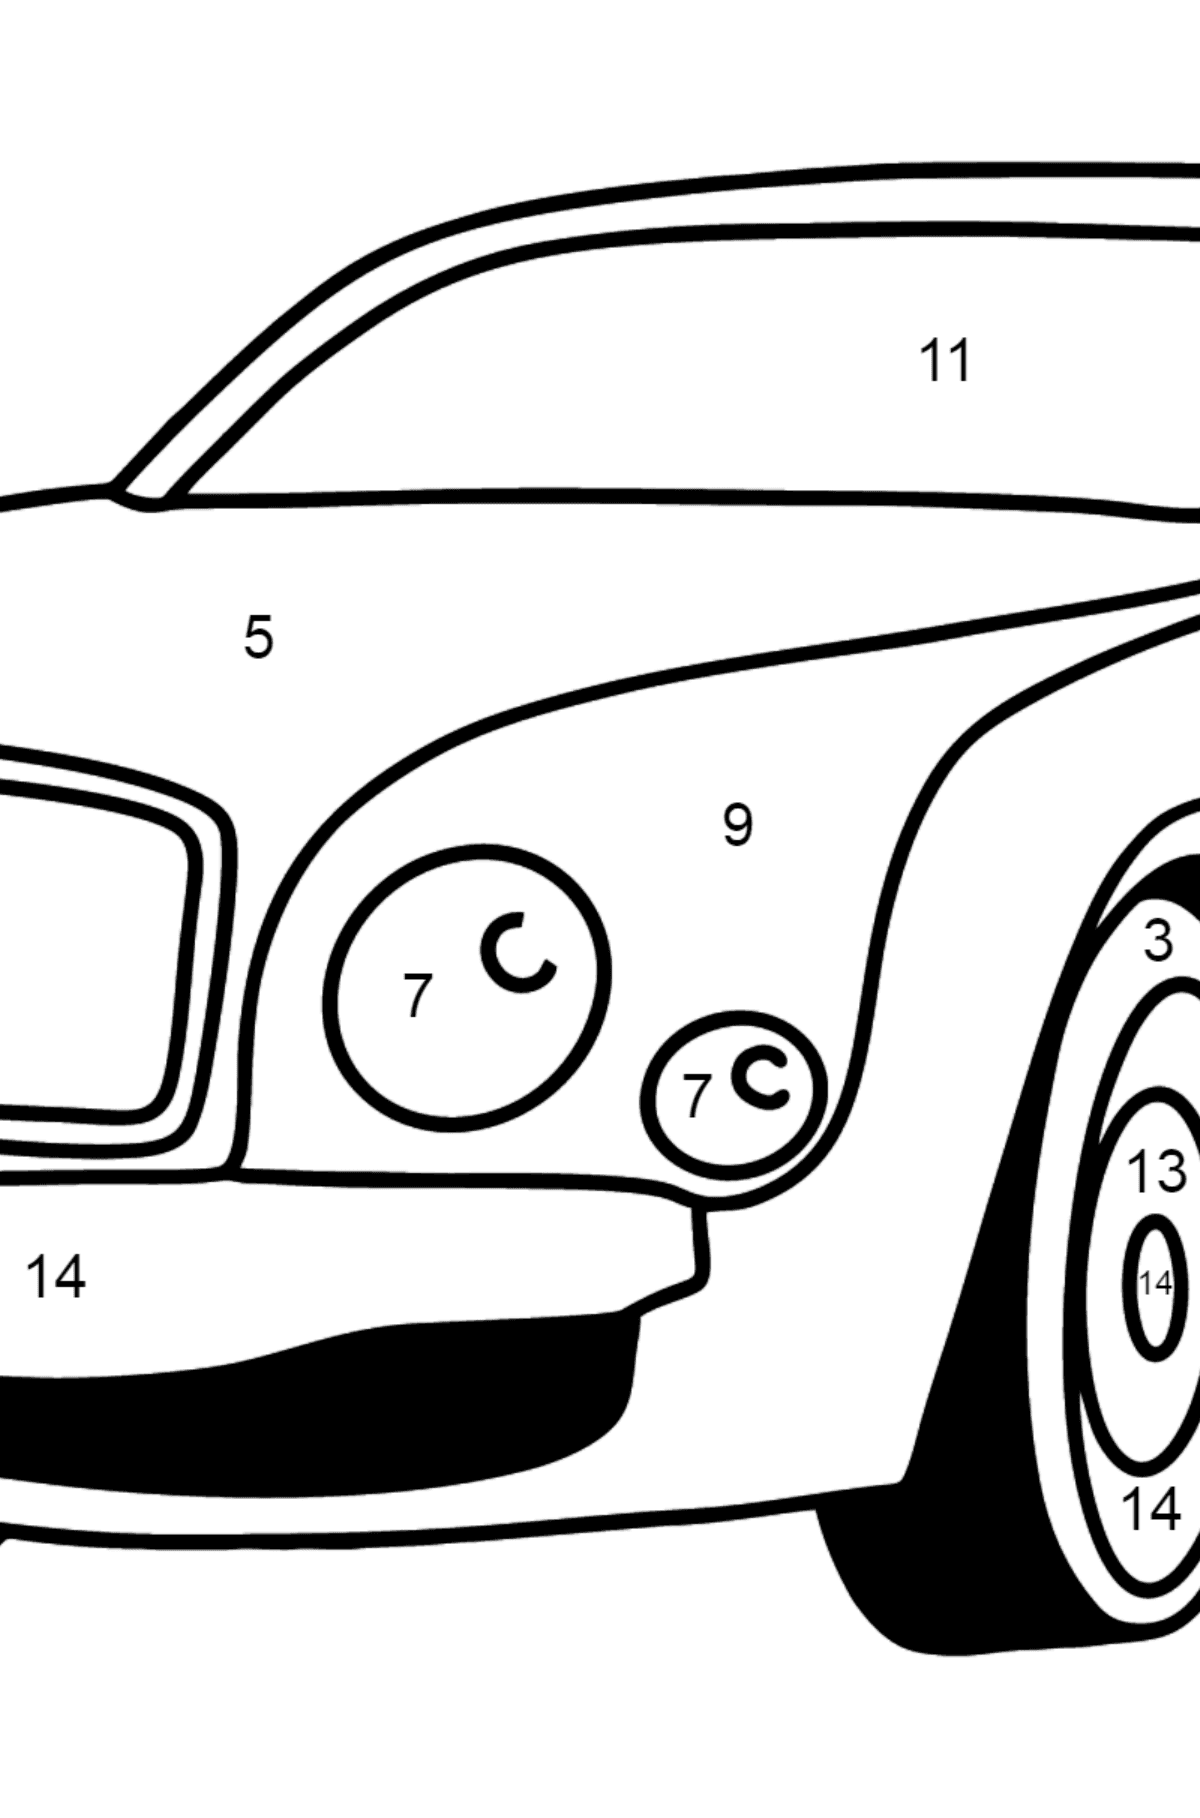 Bentley Mulsanne Car Coloring Page - Coloring by Numbers for Kids